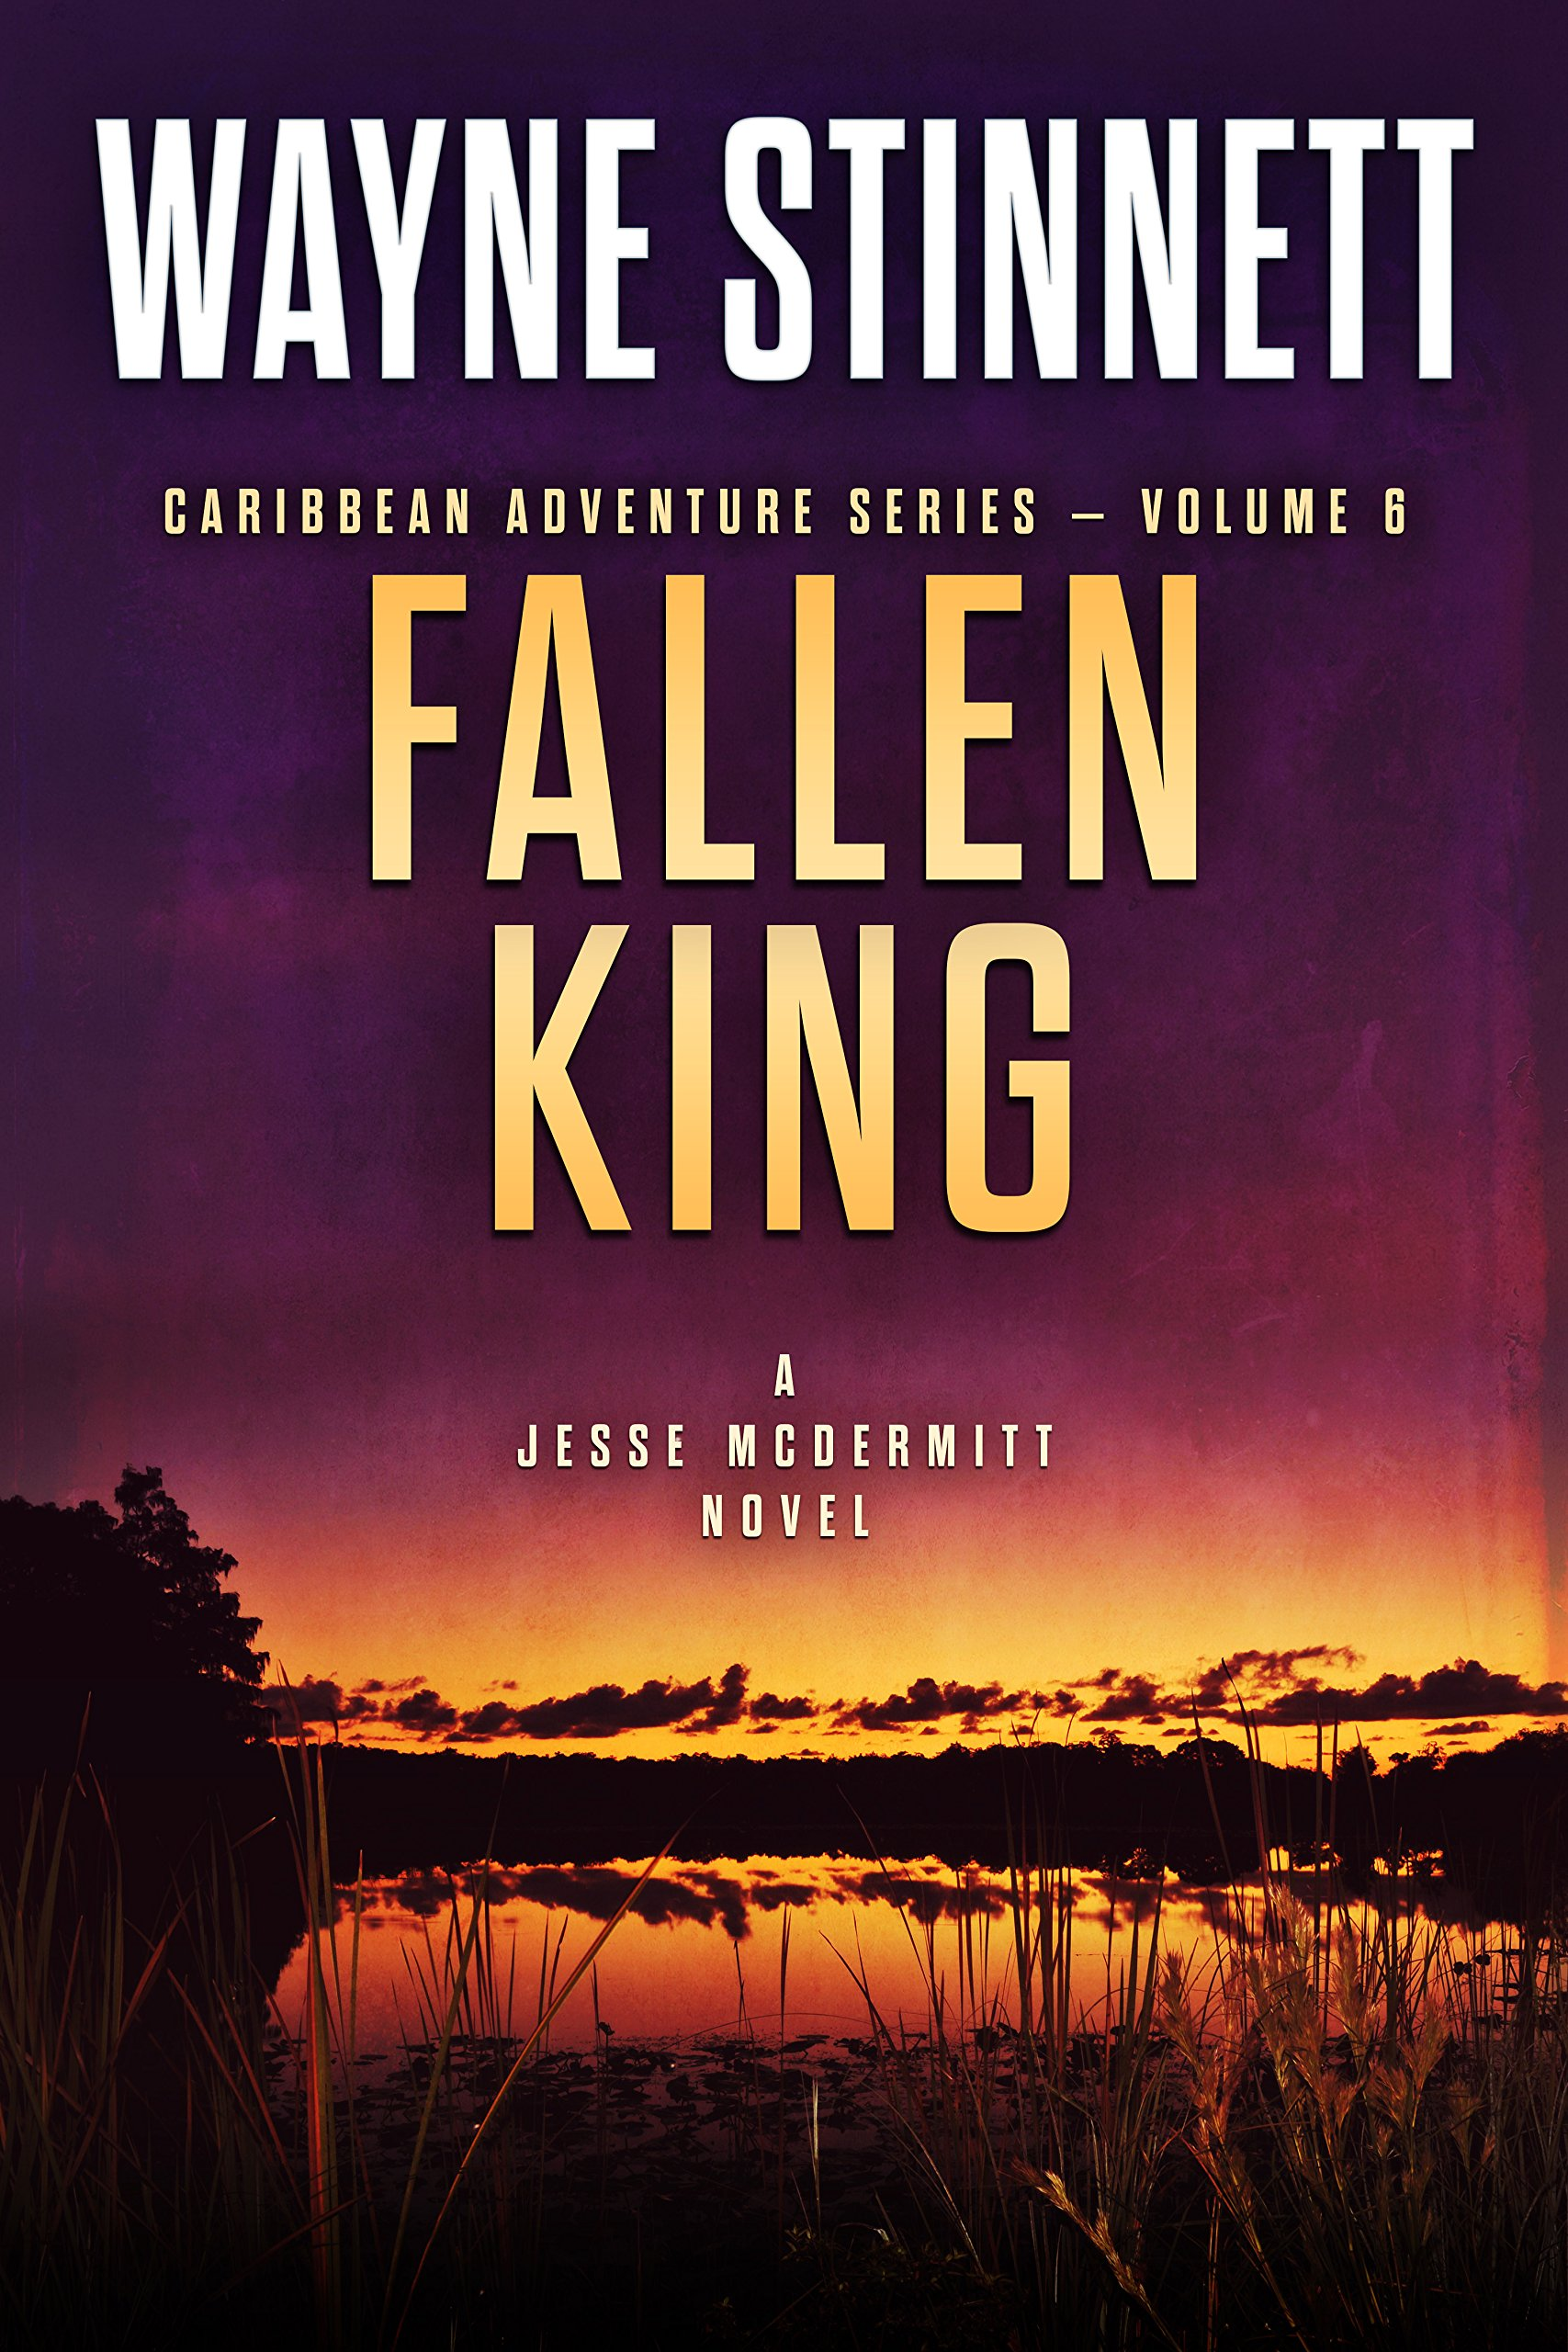 Fallen King: A Jesse McDermitt Novel (Caribbean Adventure Series Book 6) por Wayne Stinnett